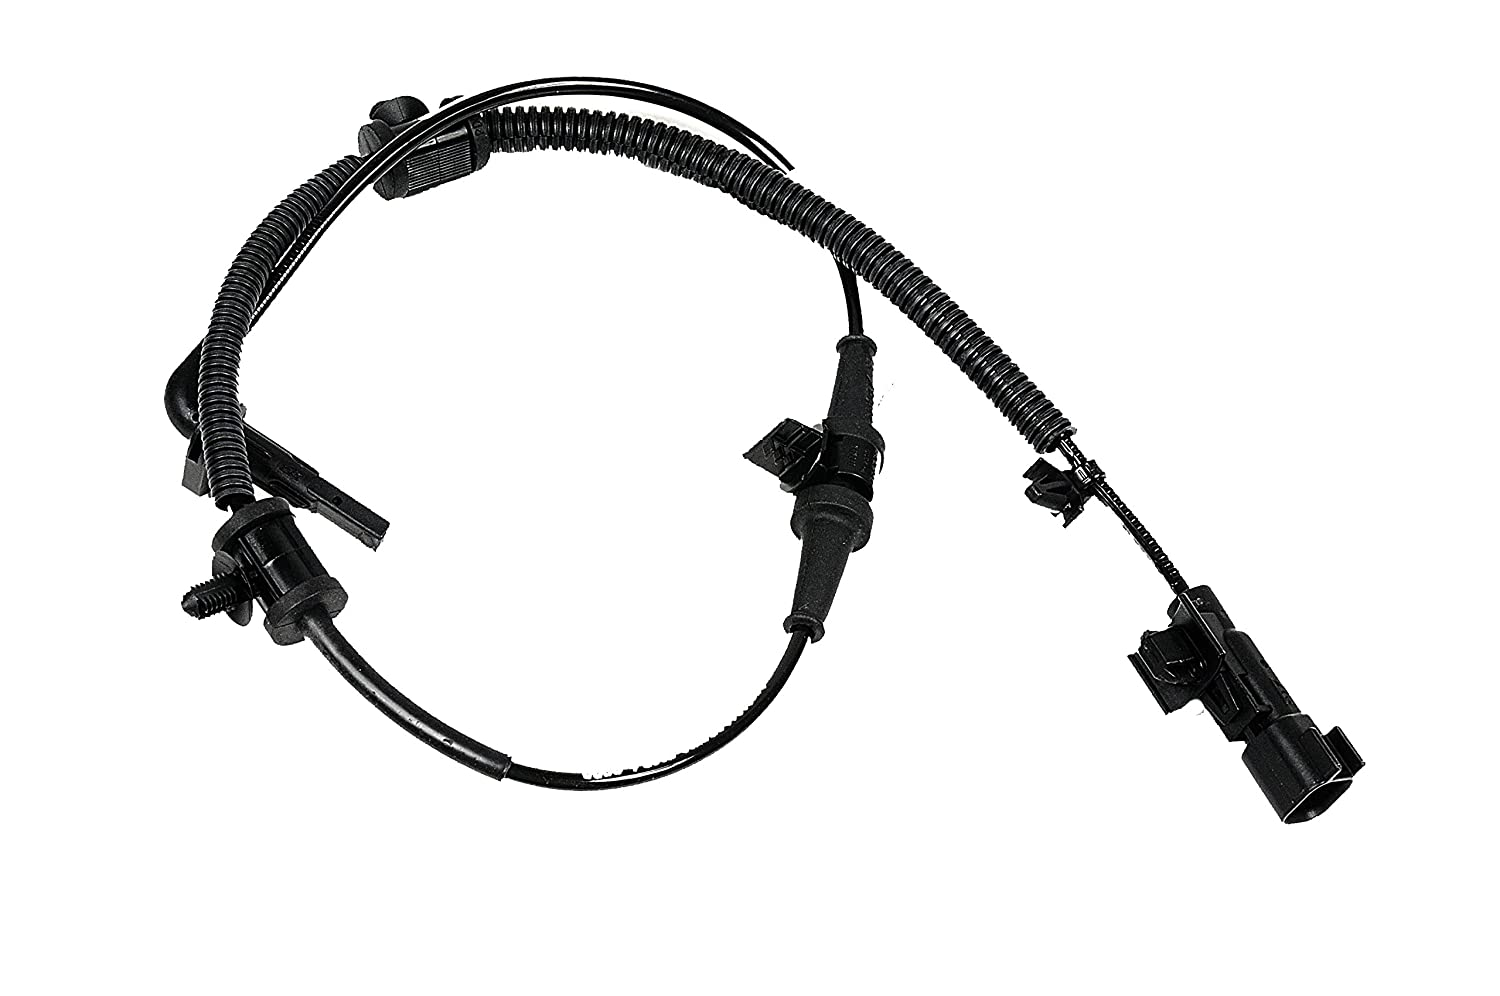 Acdelco 22831244 Gm Original Equipment Front Abs Wheel Impala Speed Sensor Wire Harness Automotive